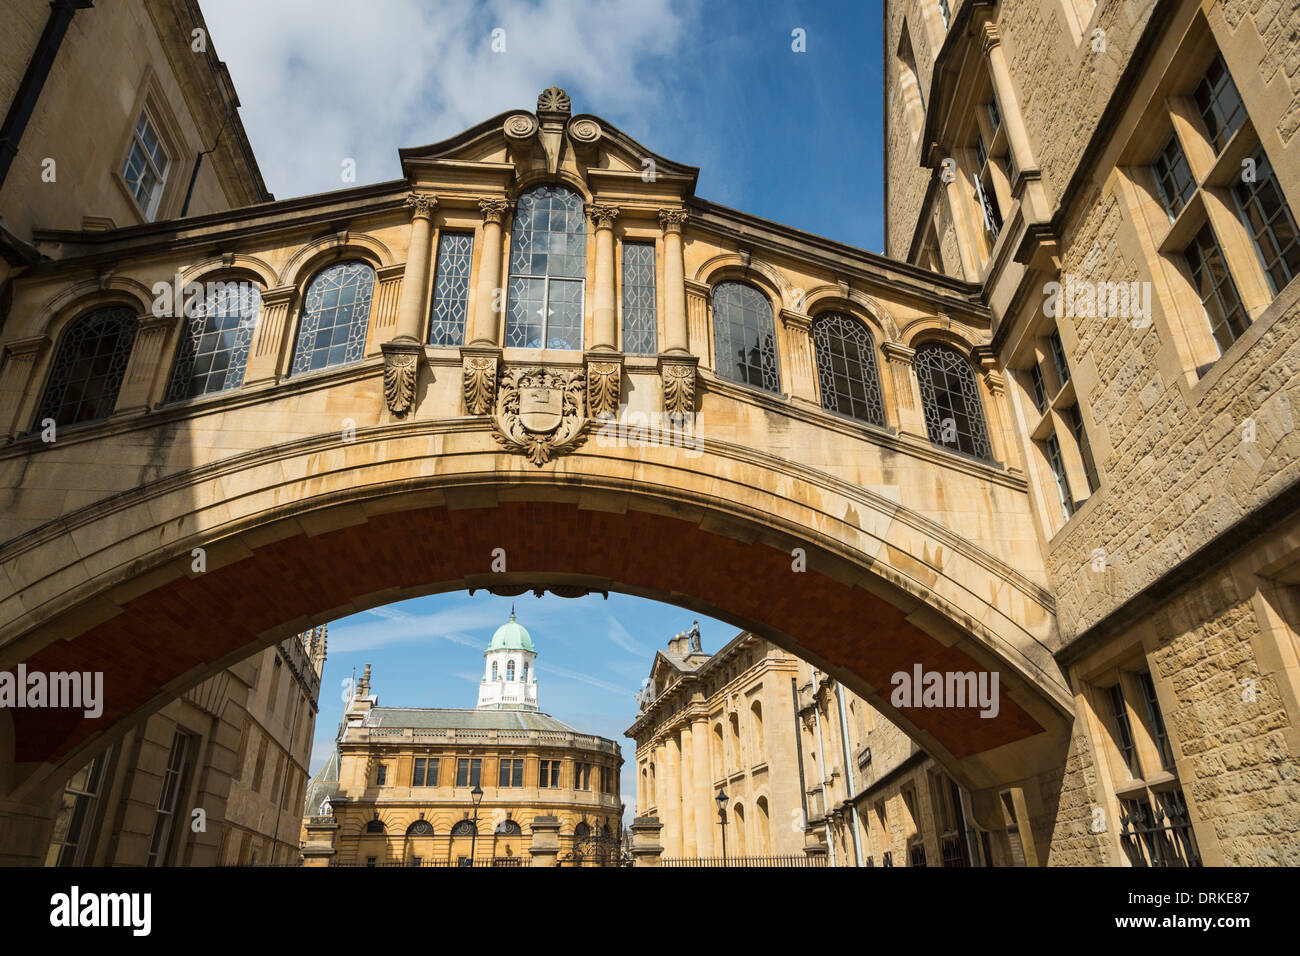 Bridge of Sighs, Sheldonian Theatre and Bodleian Library, Oxford, England Stock Photo